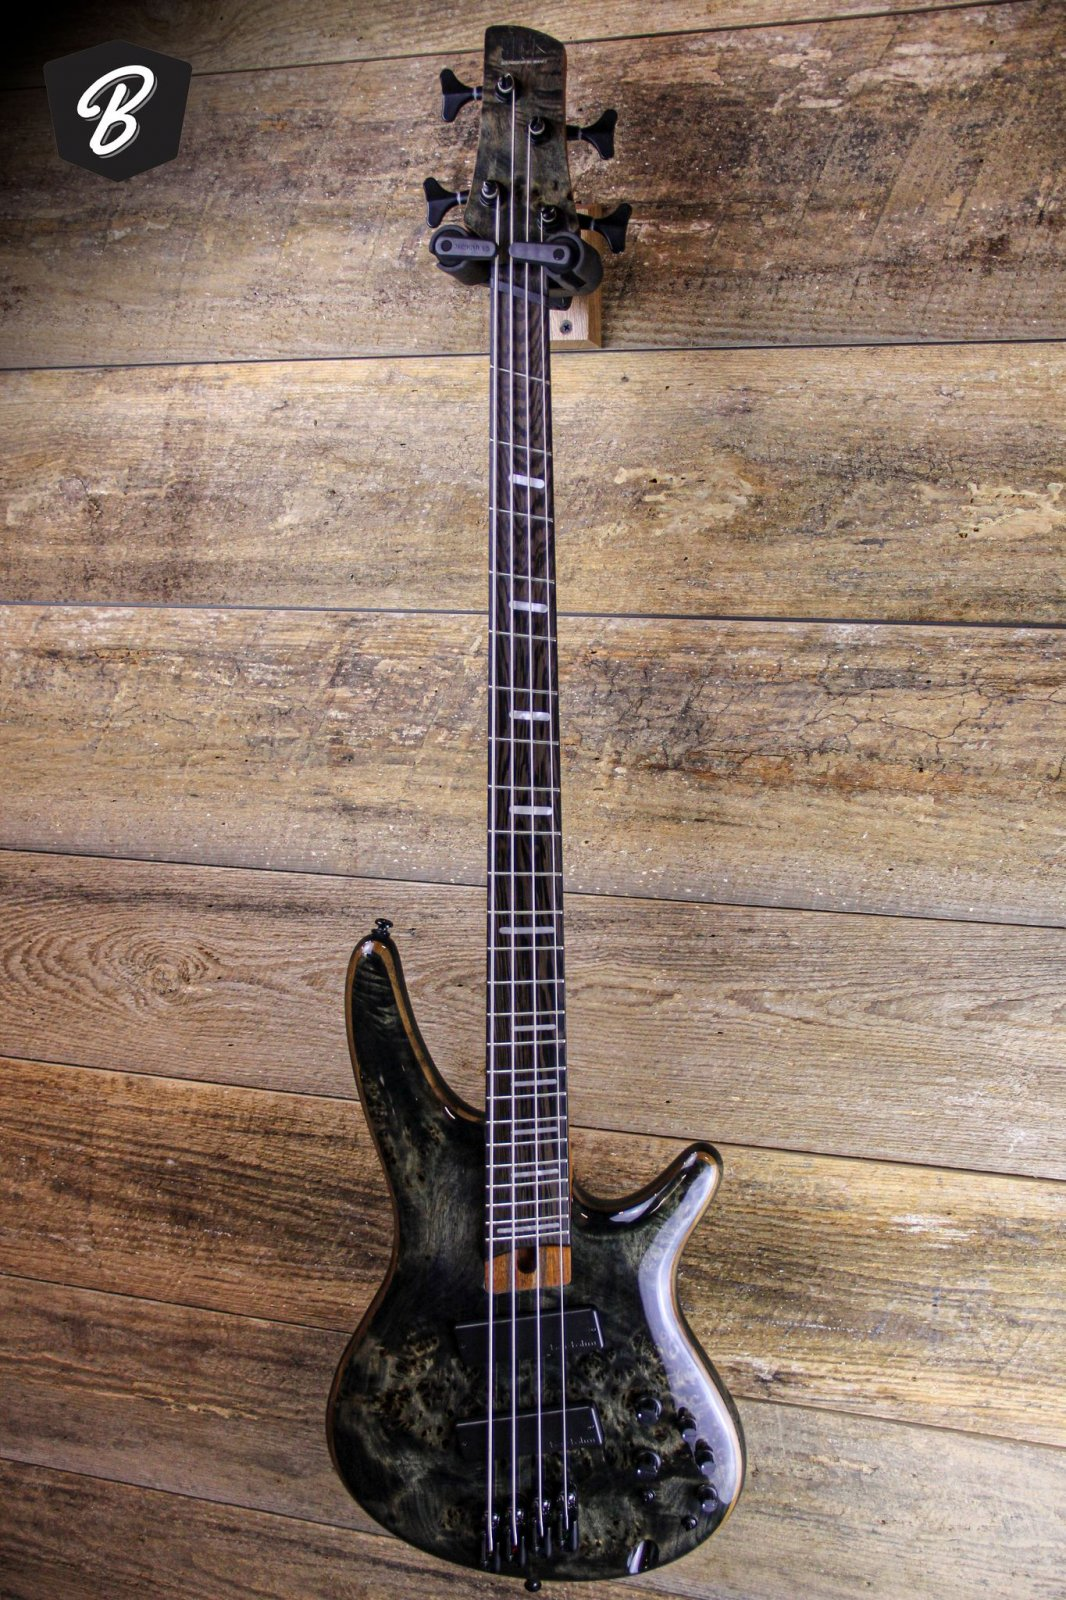 Ibanez SRMS800 Multi-Scale Bass Guitar-  Deep Twilight Finish